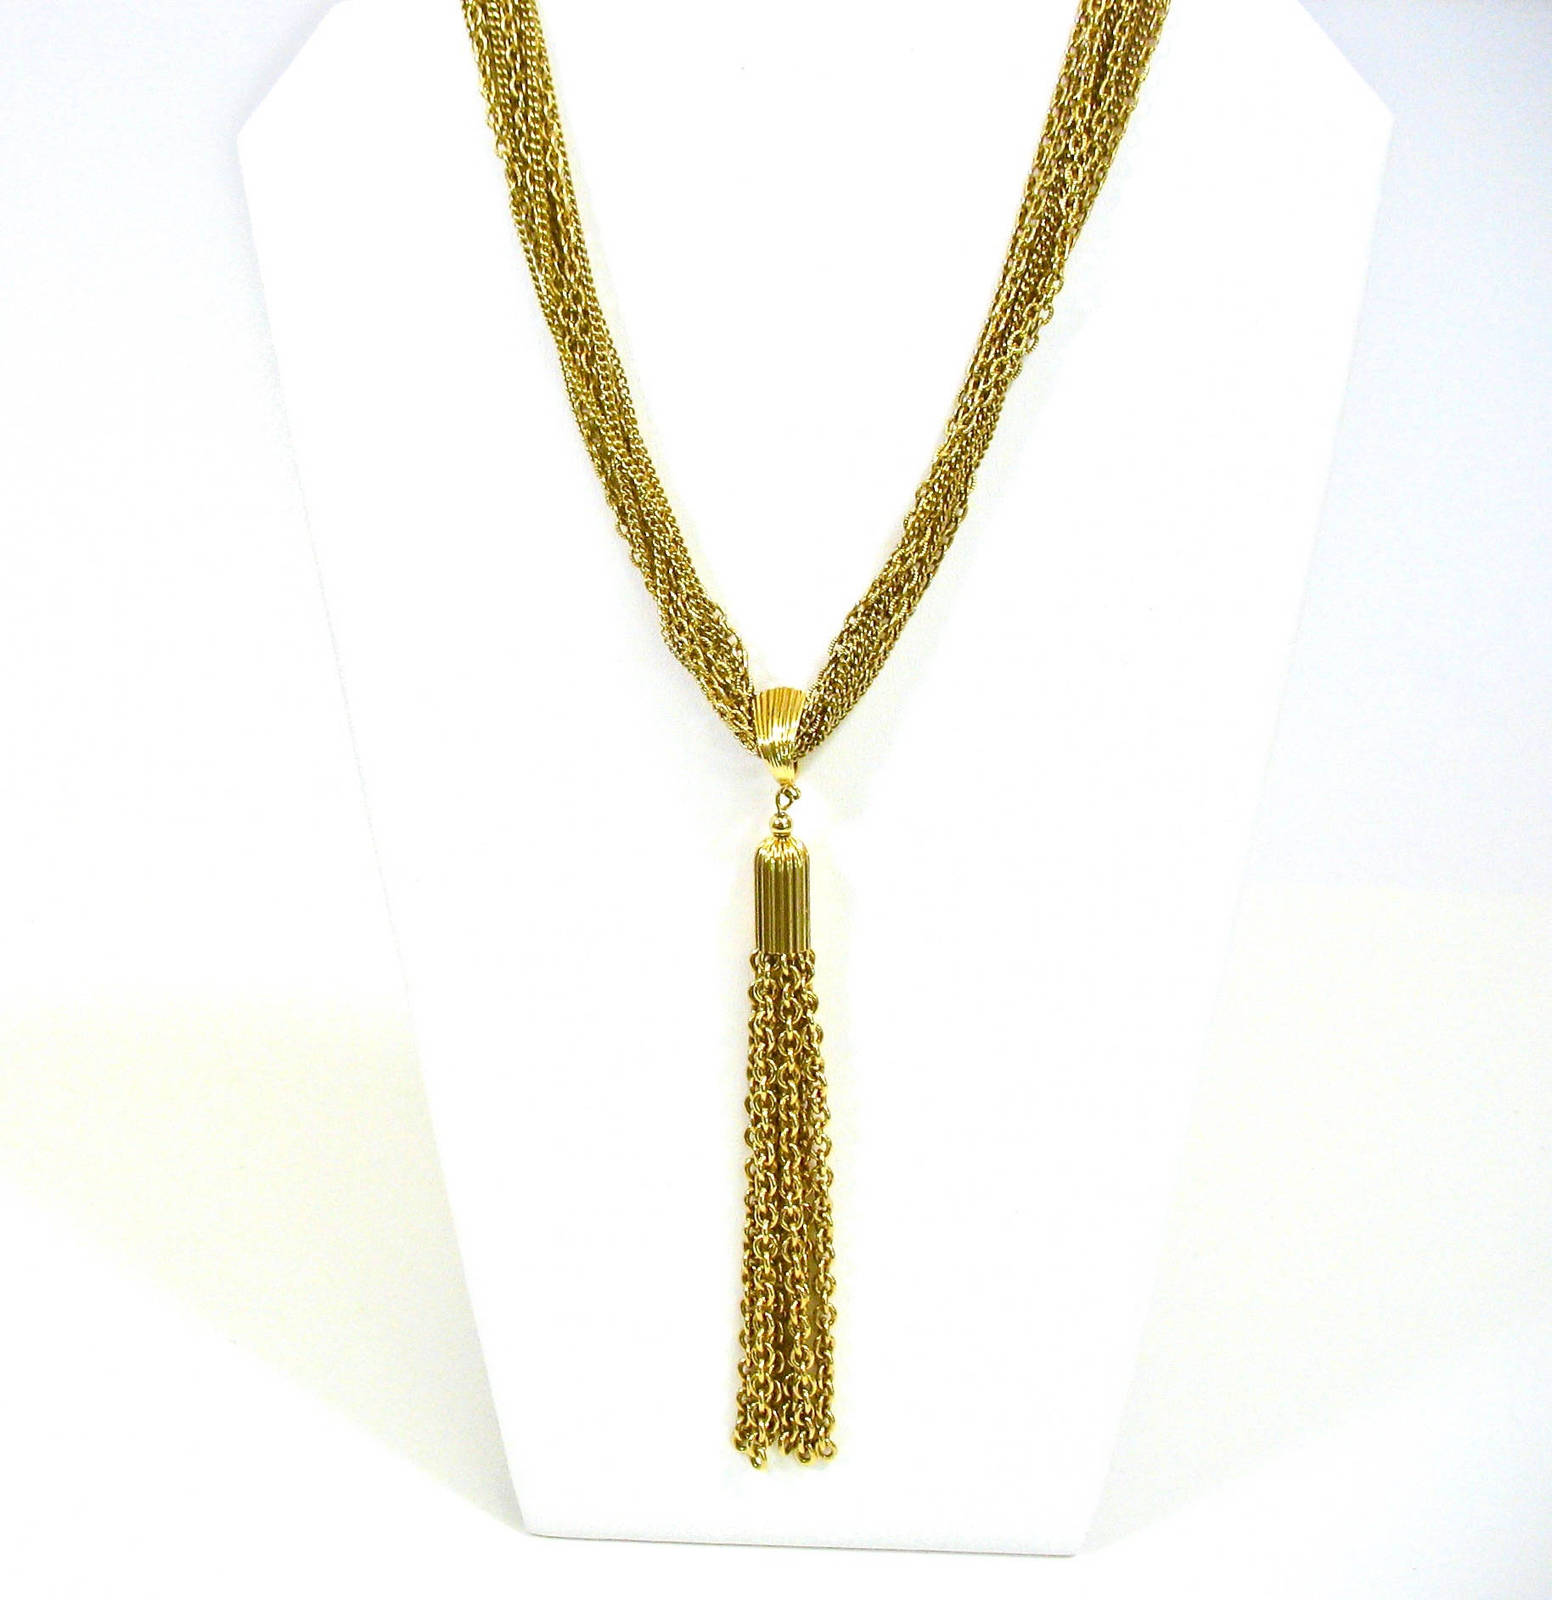 Multiple Strand Tassel Necklace, Removeable Tassel, Convertible Necklace, 1970's